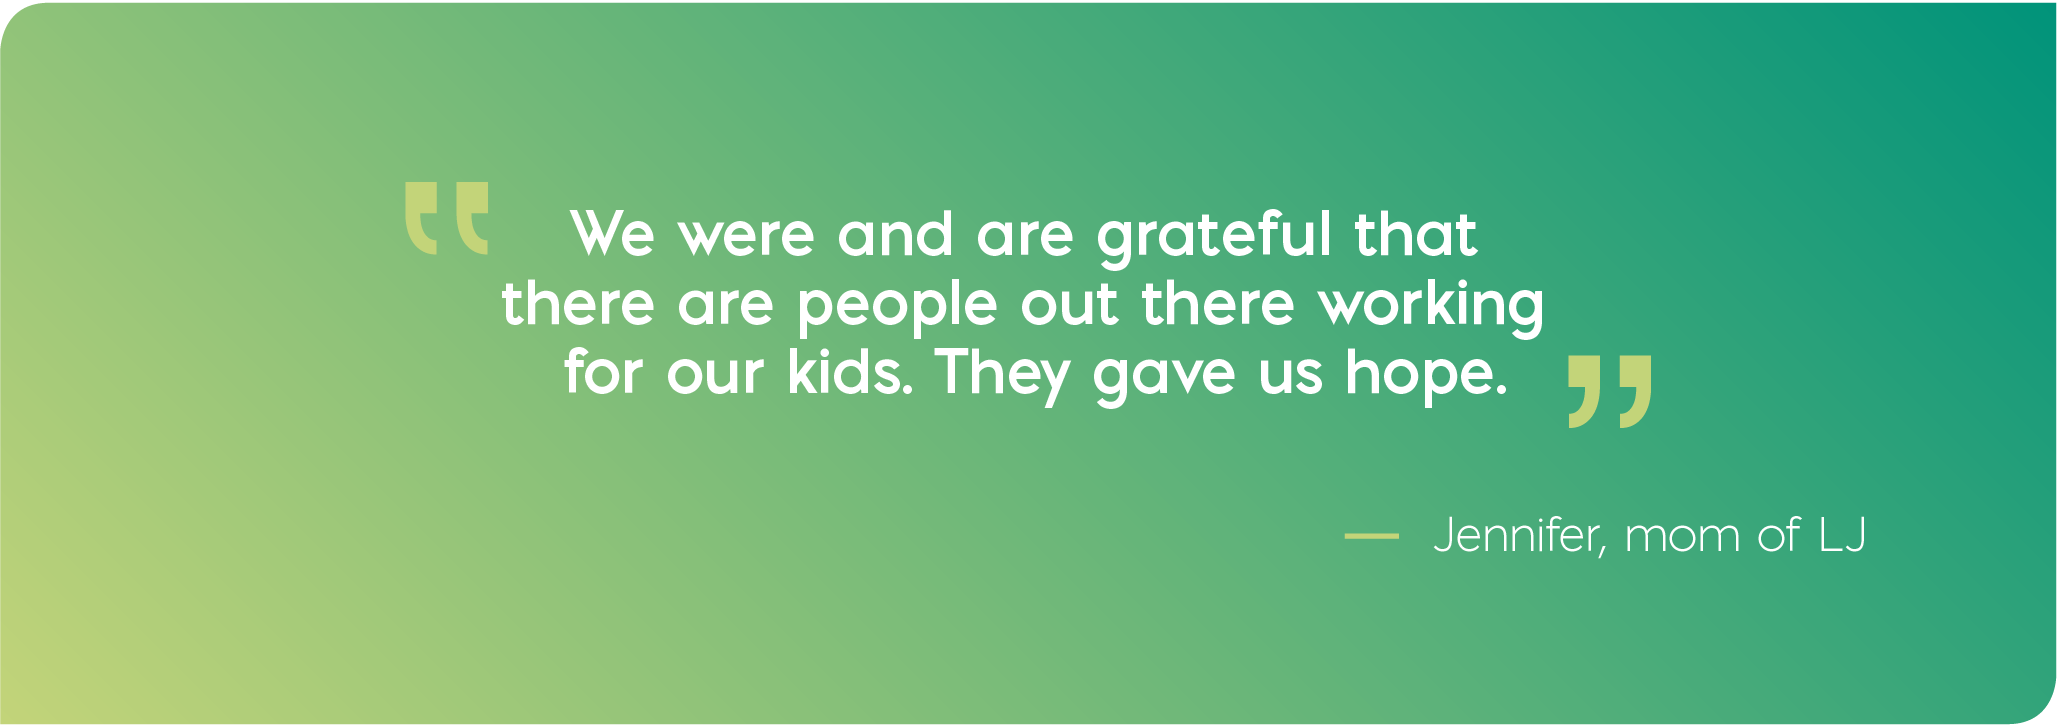 We were and are grateful that there are people out there working for our kids. They gave us hope. Quote from Jennifer, mom of LJ